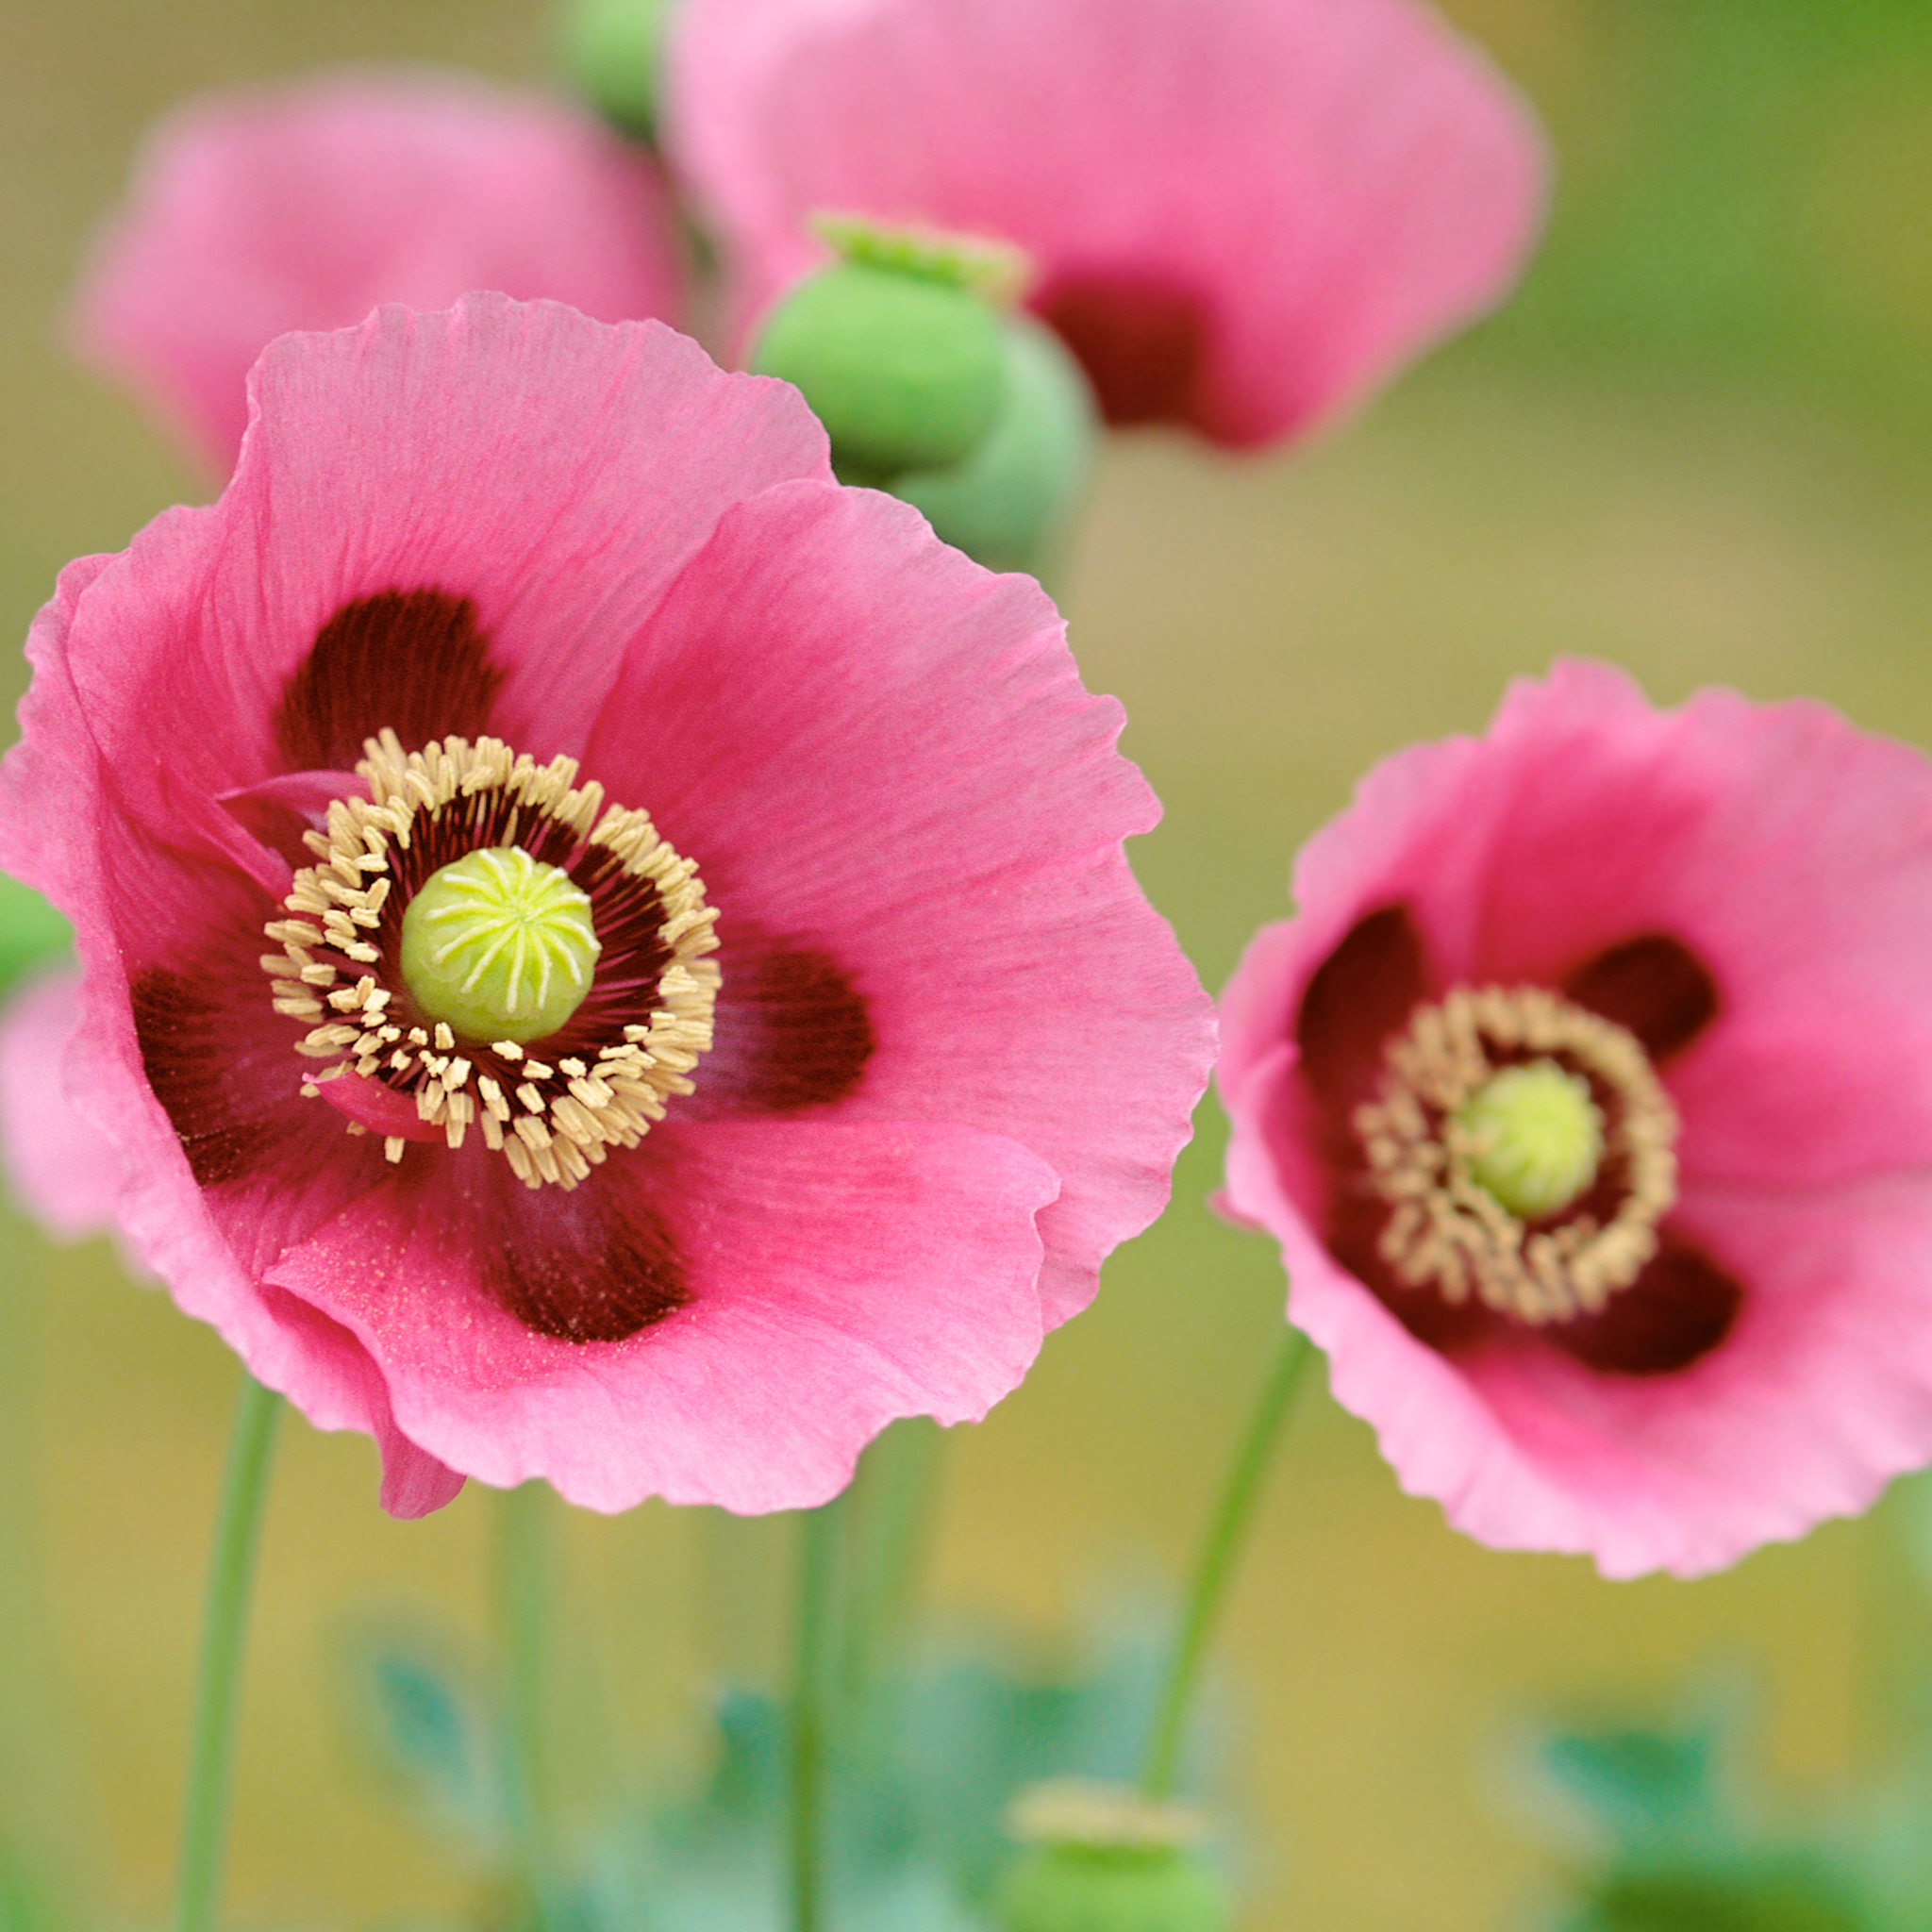 Poppies Flowers 3Wallpapers iPad Retina Poppies Flowers   iPad Retina